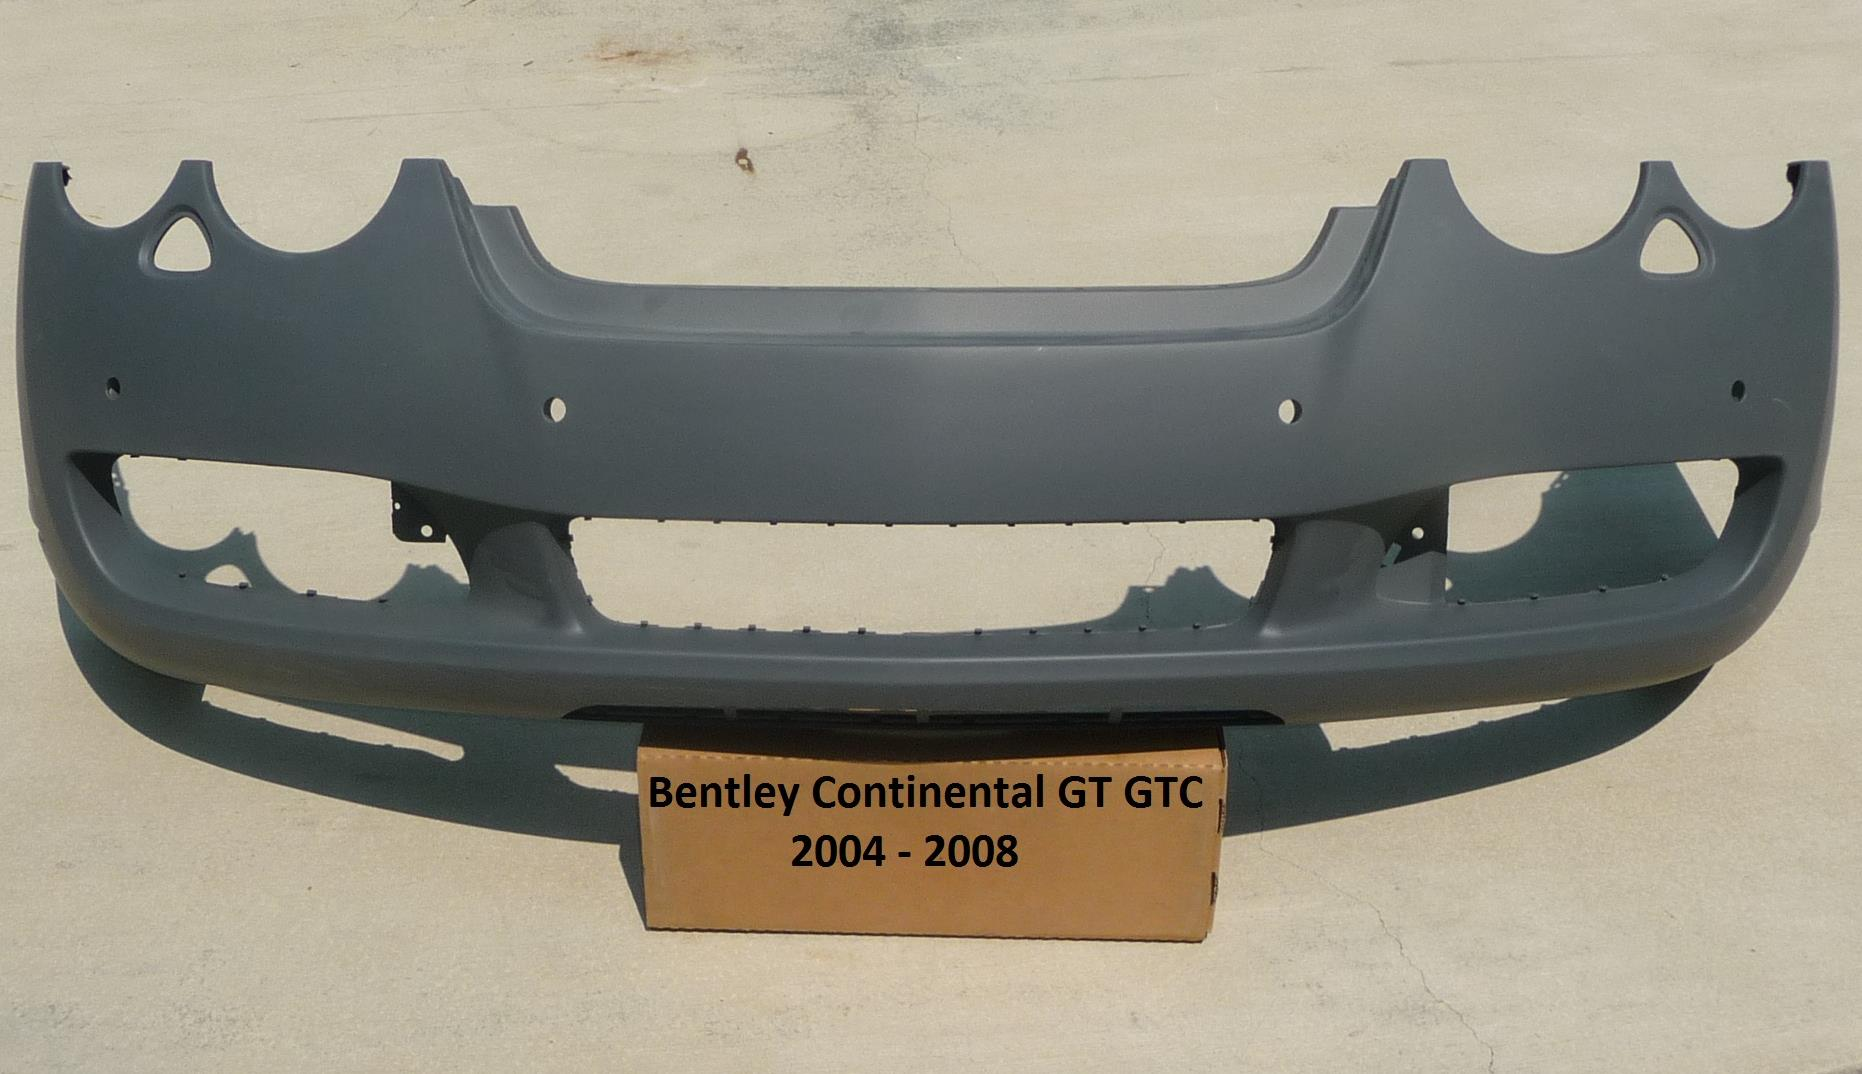 2004 2005 2006 2007 2008 Bentley Continental GT GTC two (2) door Coupe Convertible Front Bumper Cover 3W8807221 OEM OE